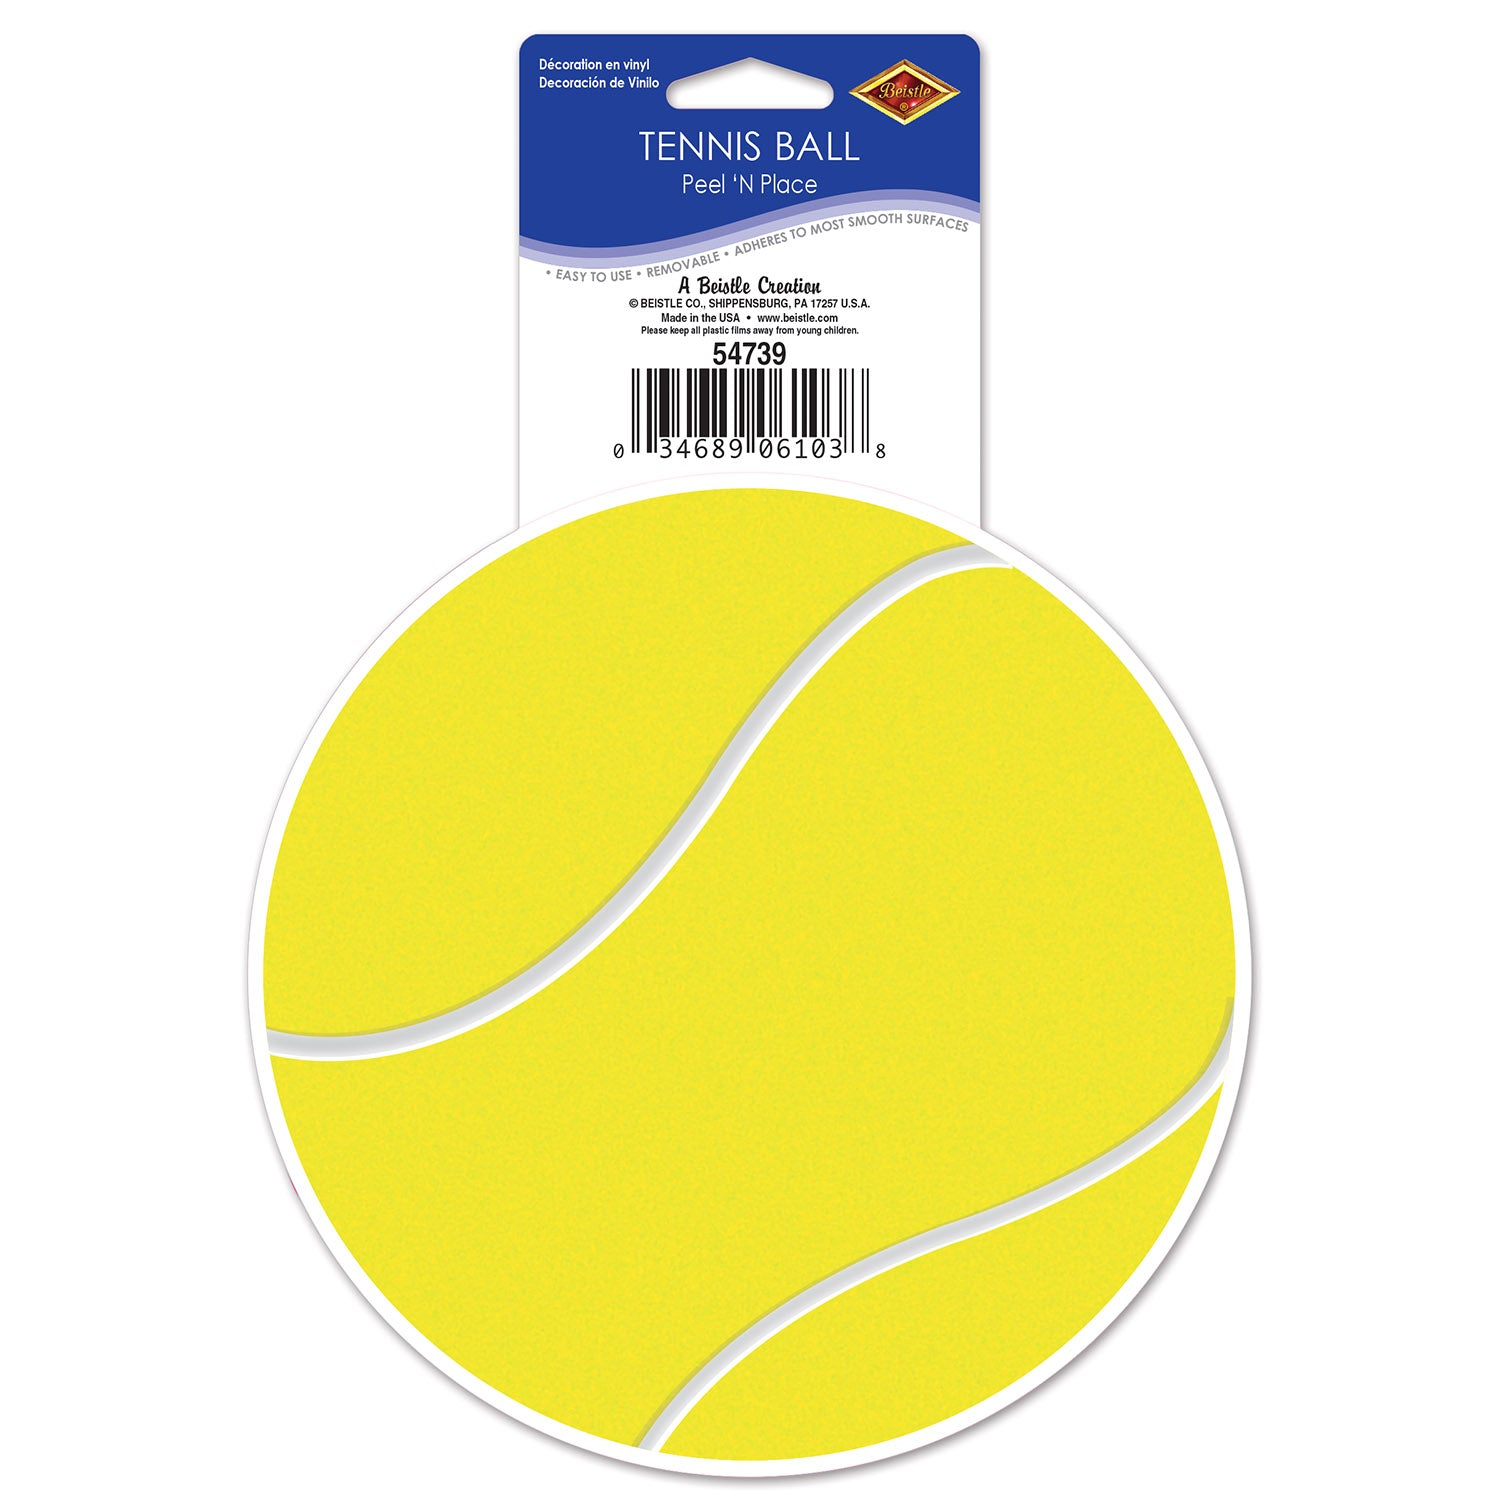 Tennis Ball Peel 'N Place (1 Sheet) by Beistle - Tennis Theme Decorations